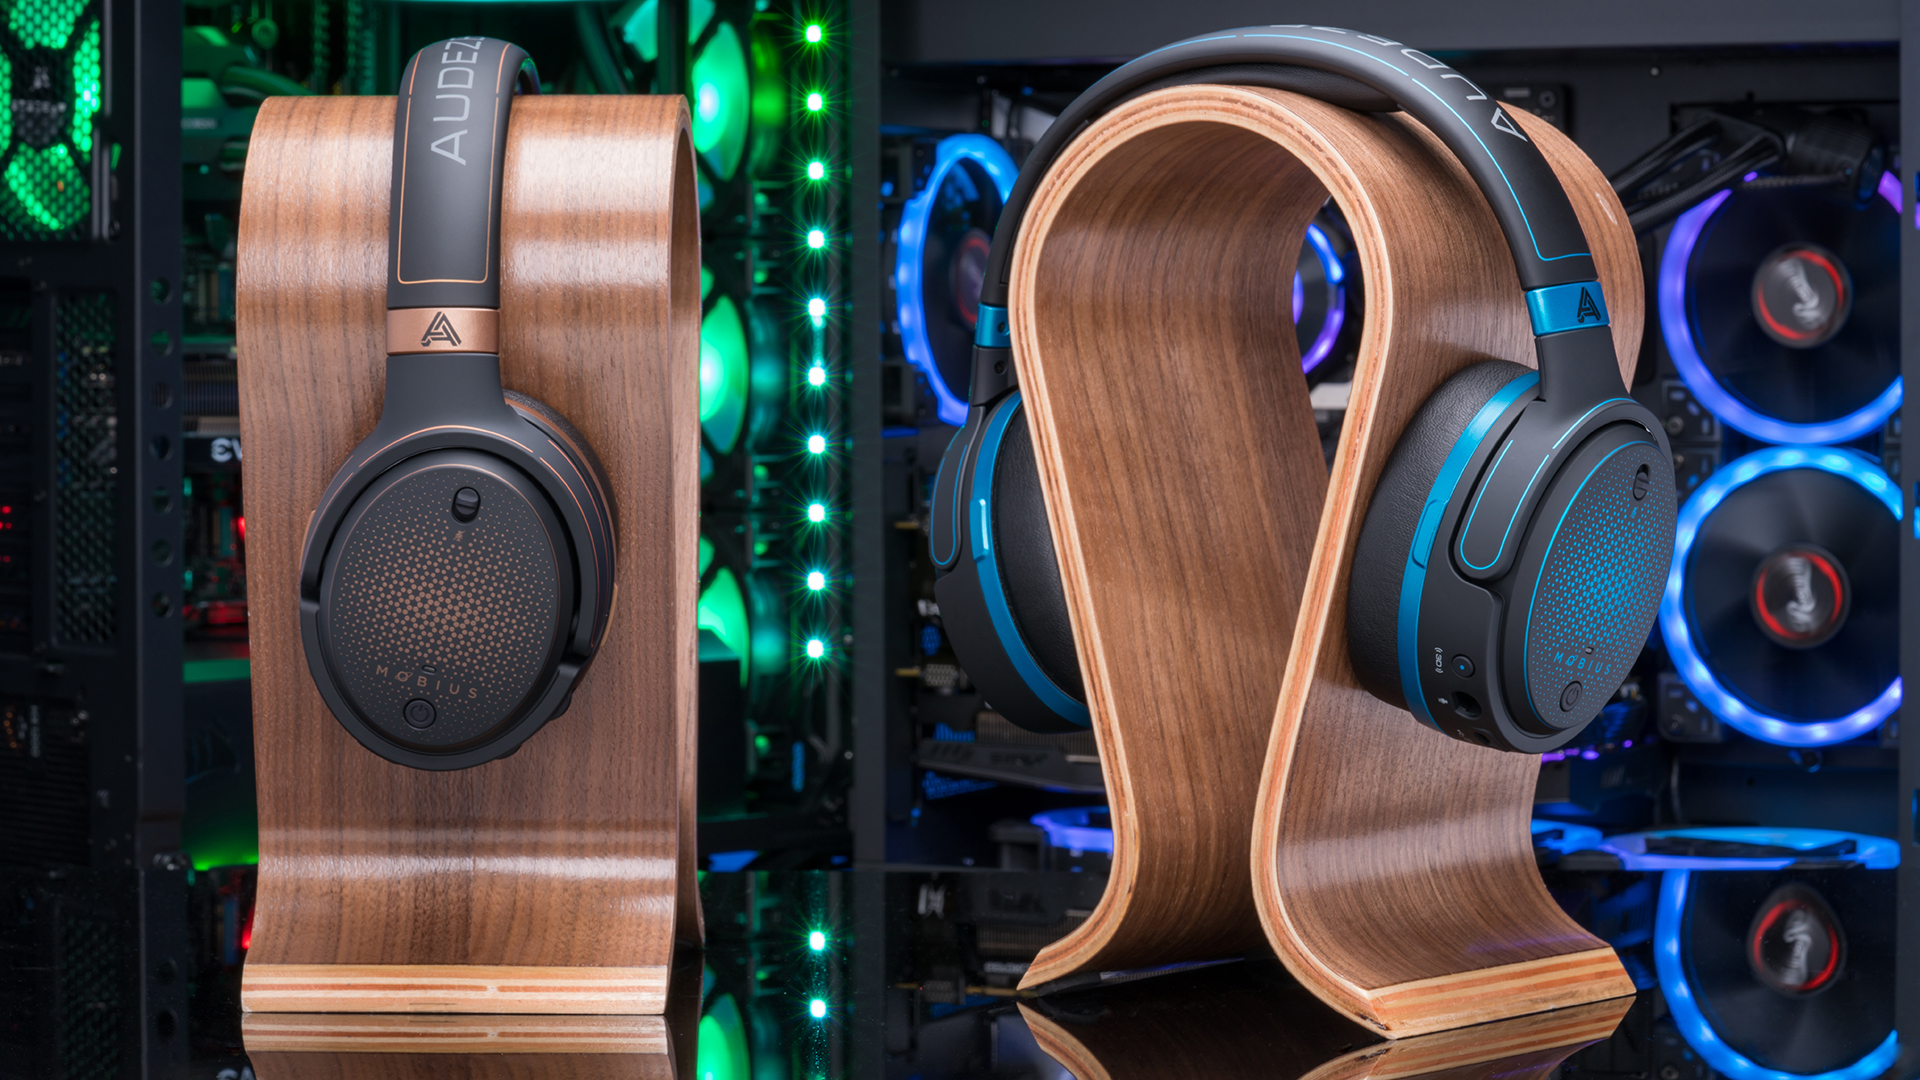 The Audeze Mobius gaming headphones immerse you in a 3D audio wonderland